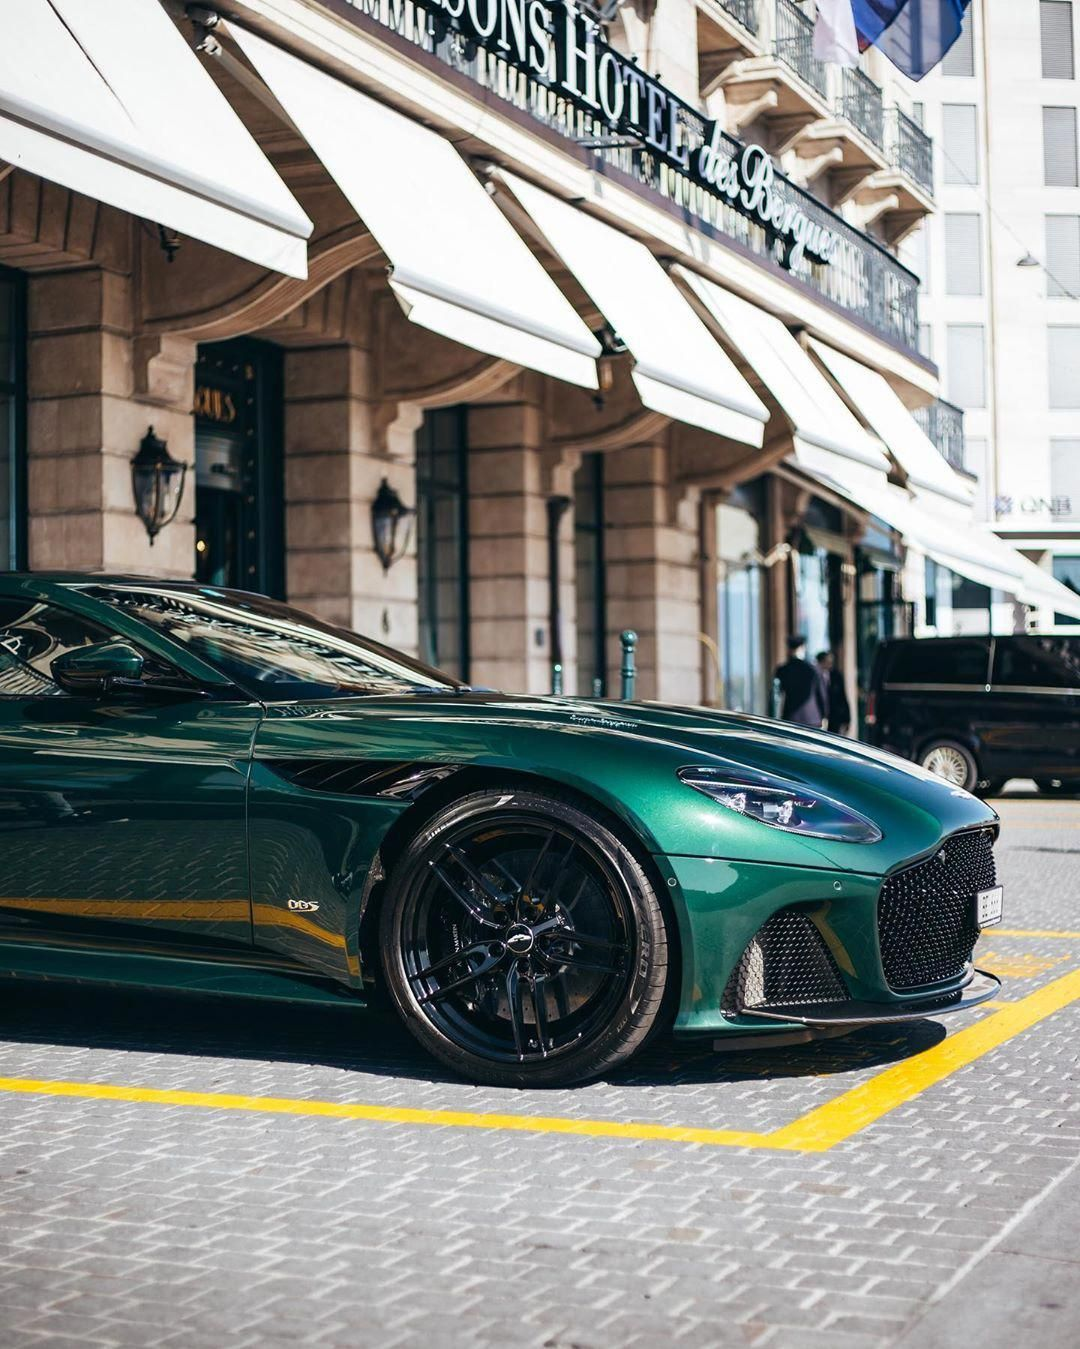 Tristan Bronnimann On Instagram A Very Classy Dbs Featuring Fsgeneva Incredibly Photogenic Facade Astonmartin In 2020 Top Luxury Cars Luxury Cars Cool Sports Cars